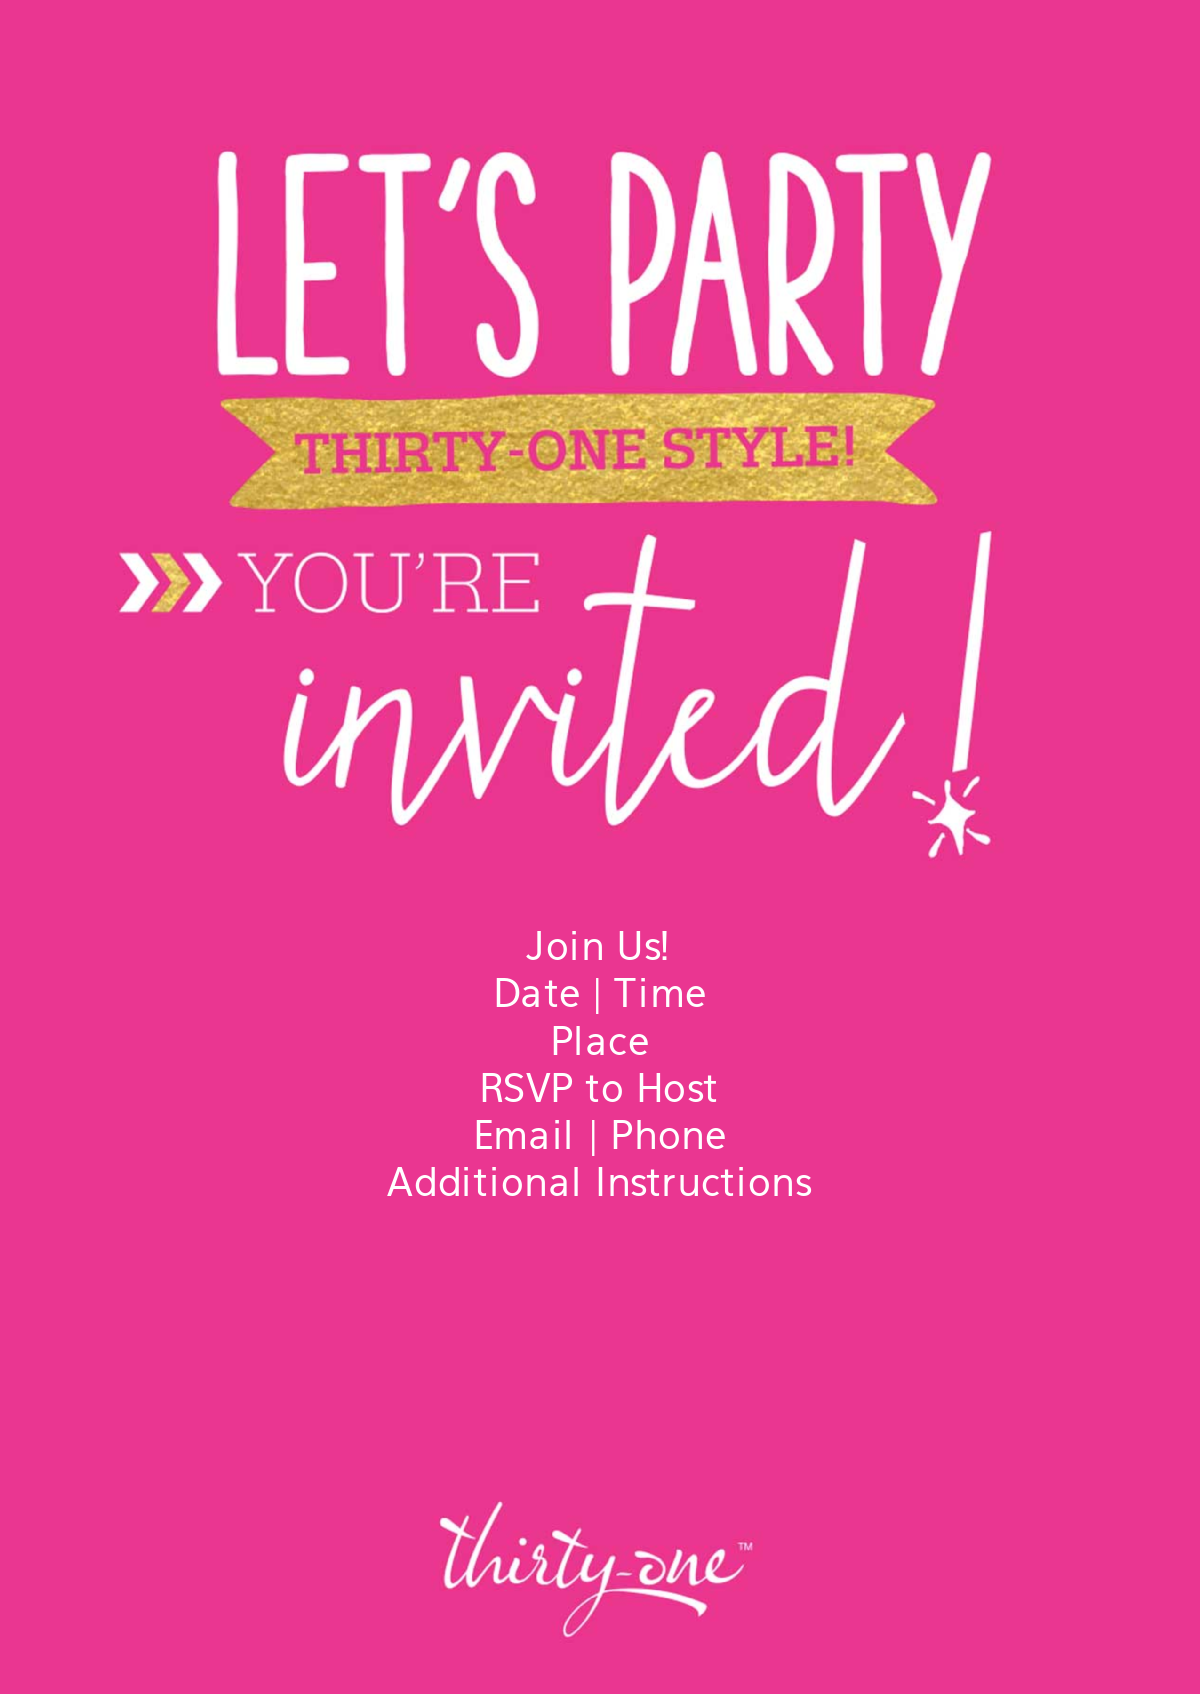 THIRTY-ONE PINK AND GOLD INVITATION | Thirty-one | Pinterest ...